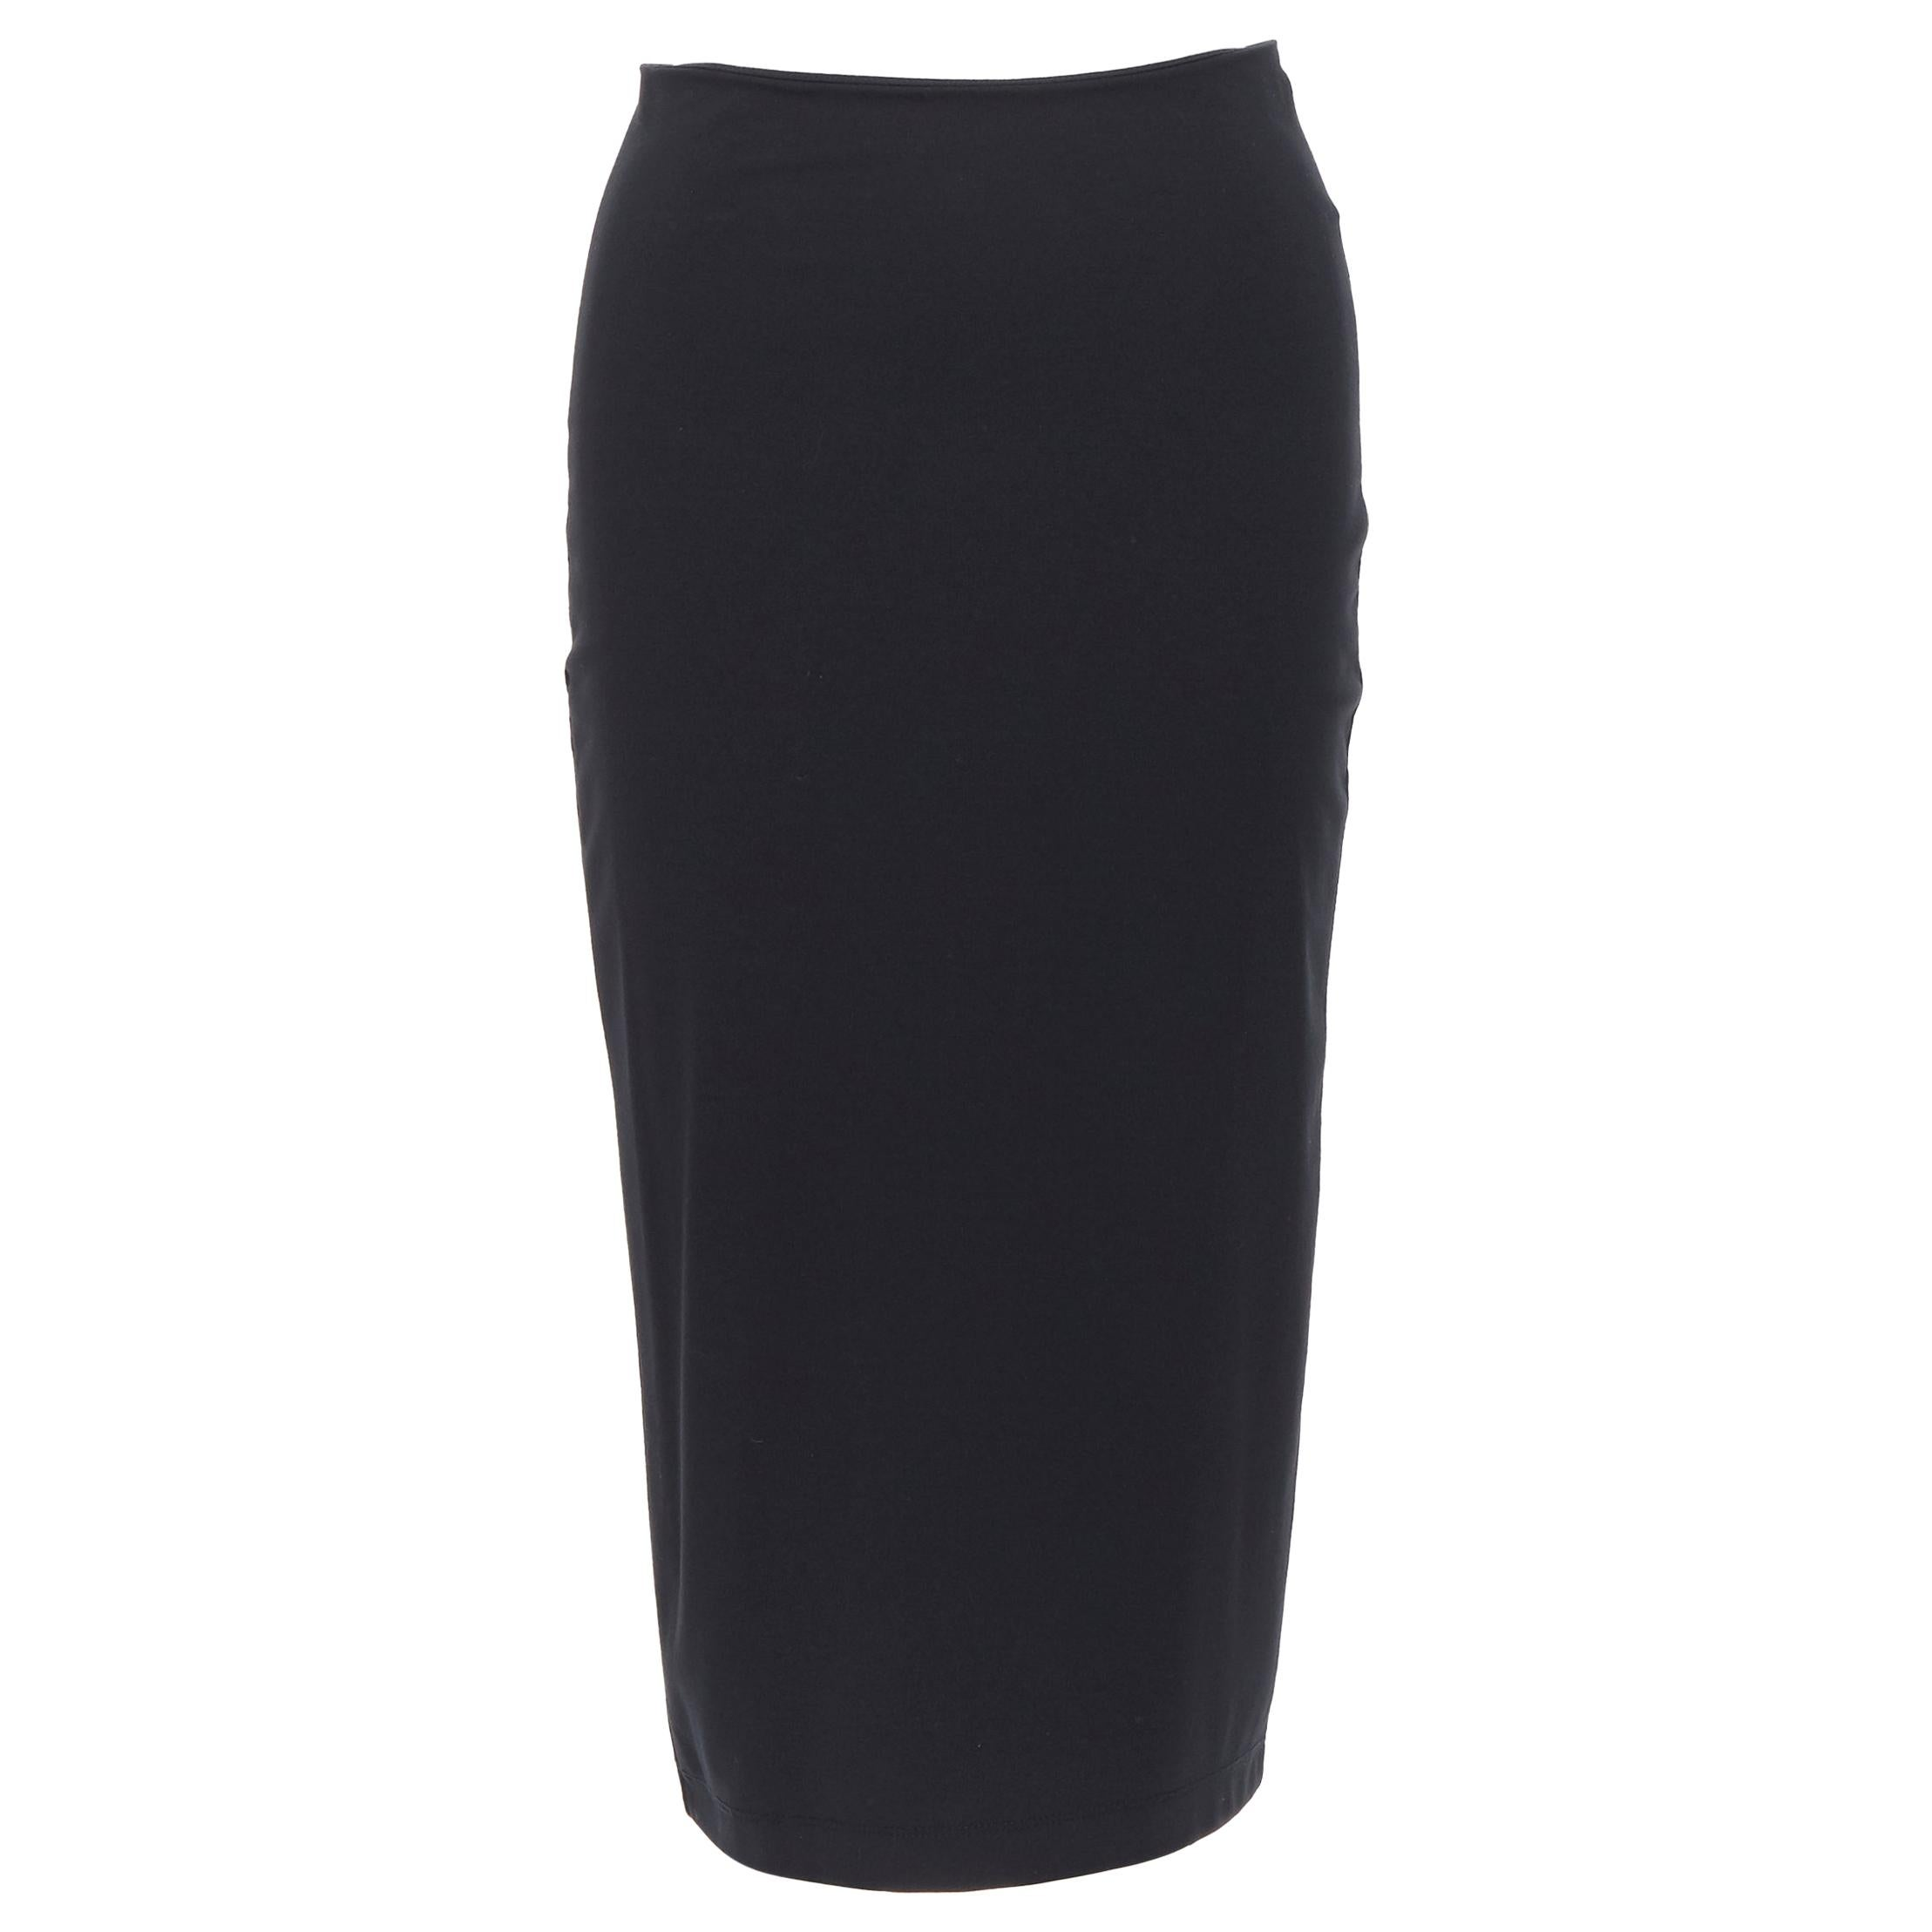 T BY ALEXANDER WANG black rayon polyester center slit stretch pencil skirt S